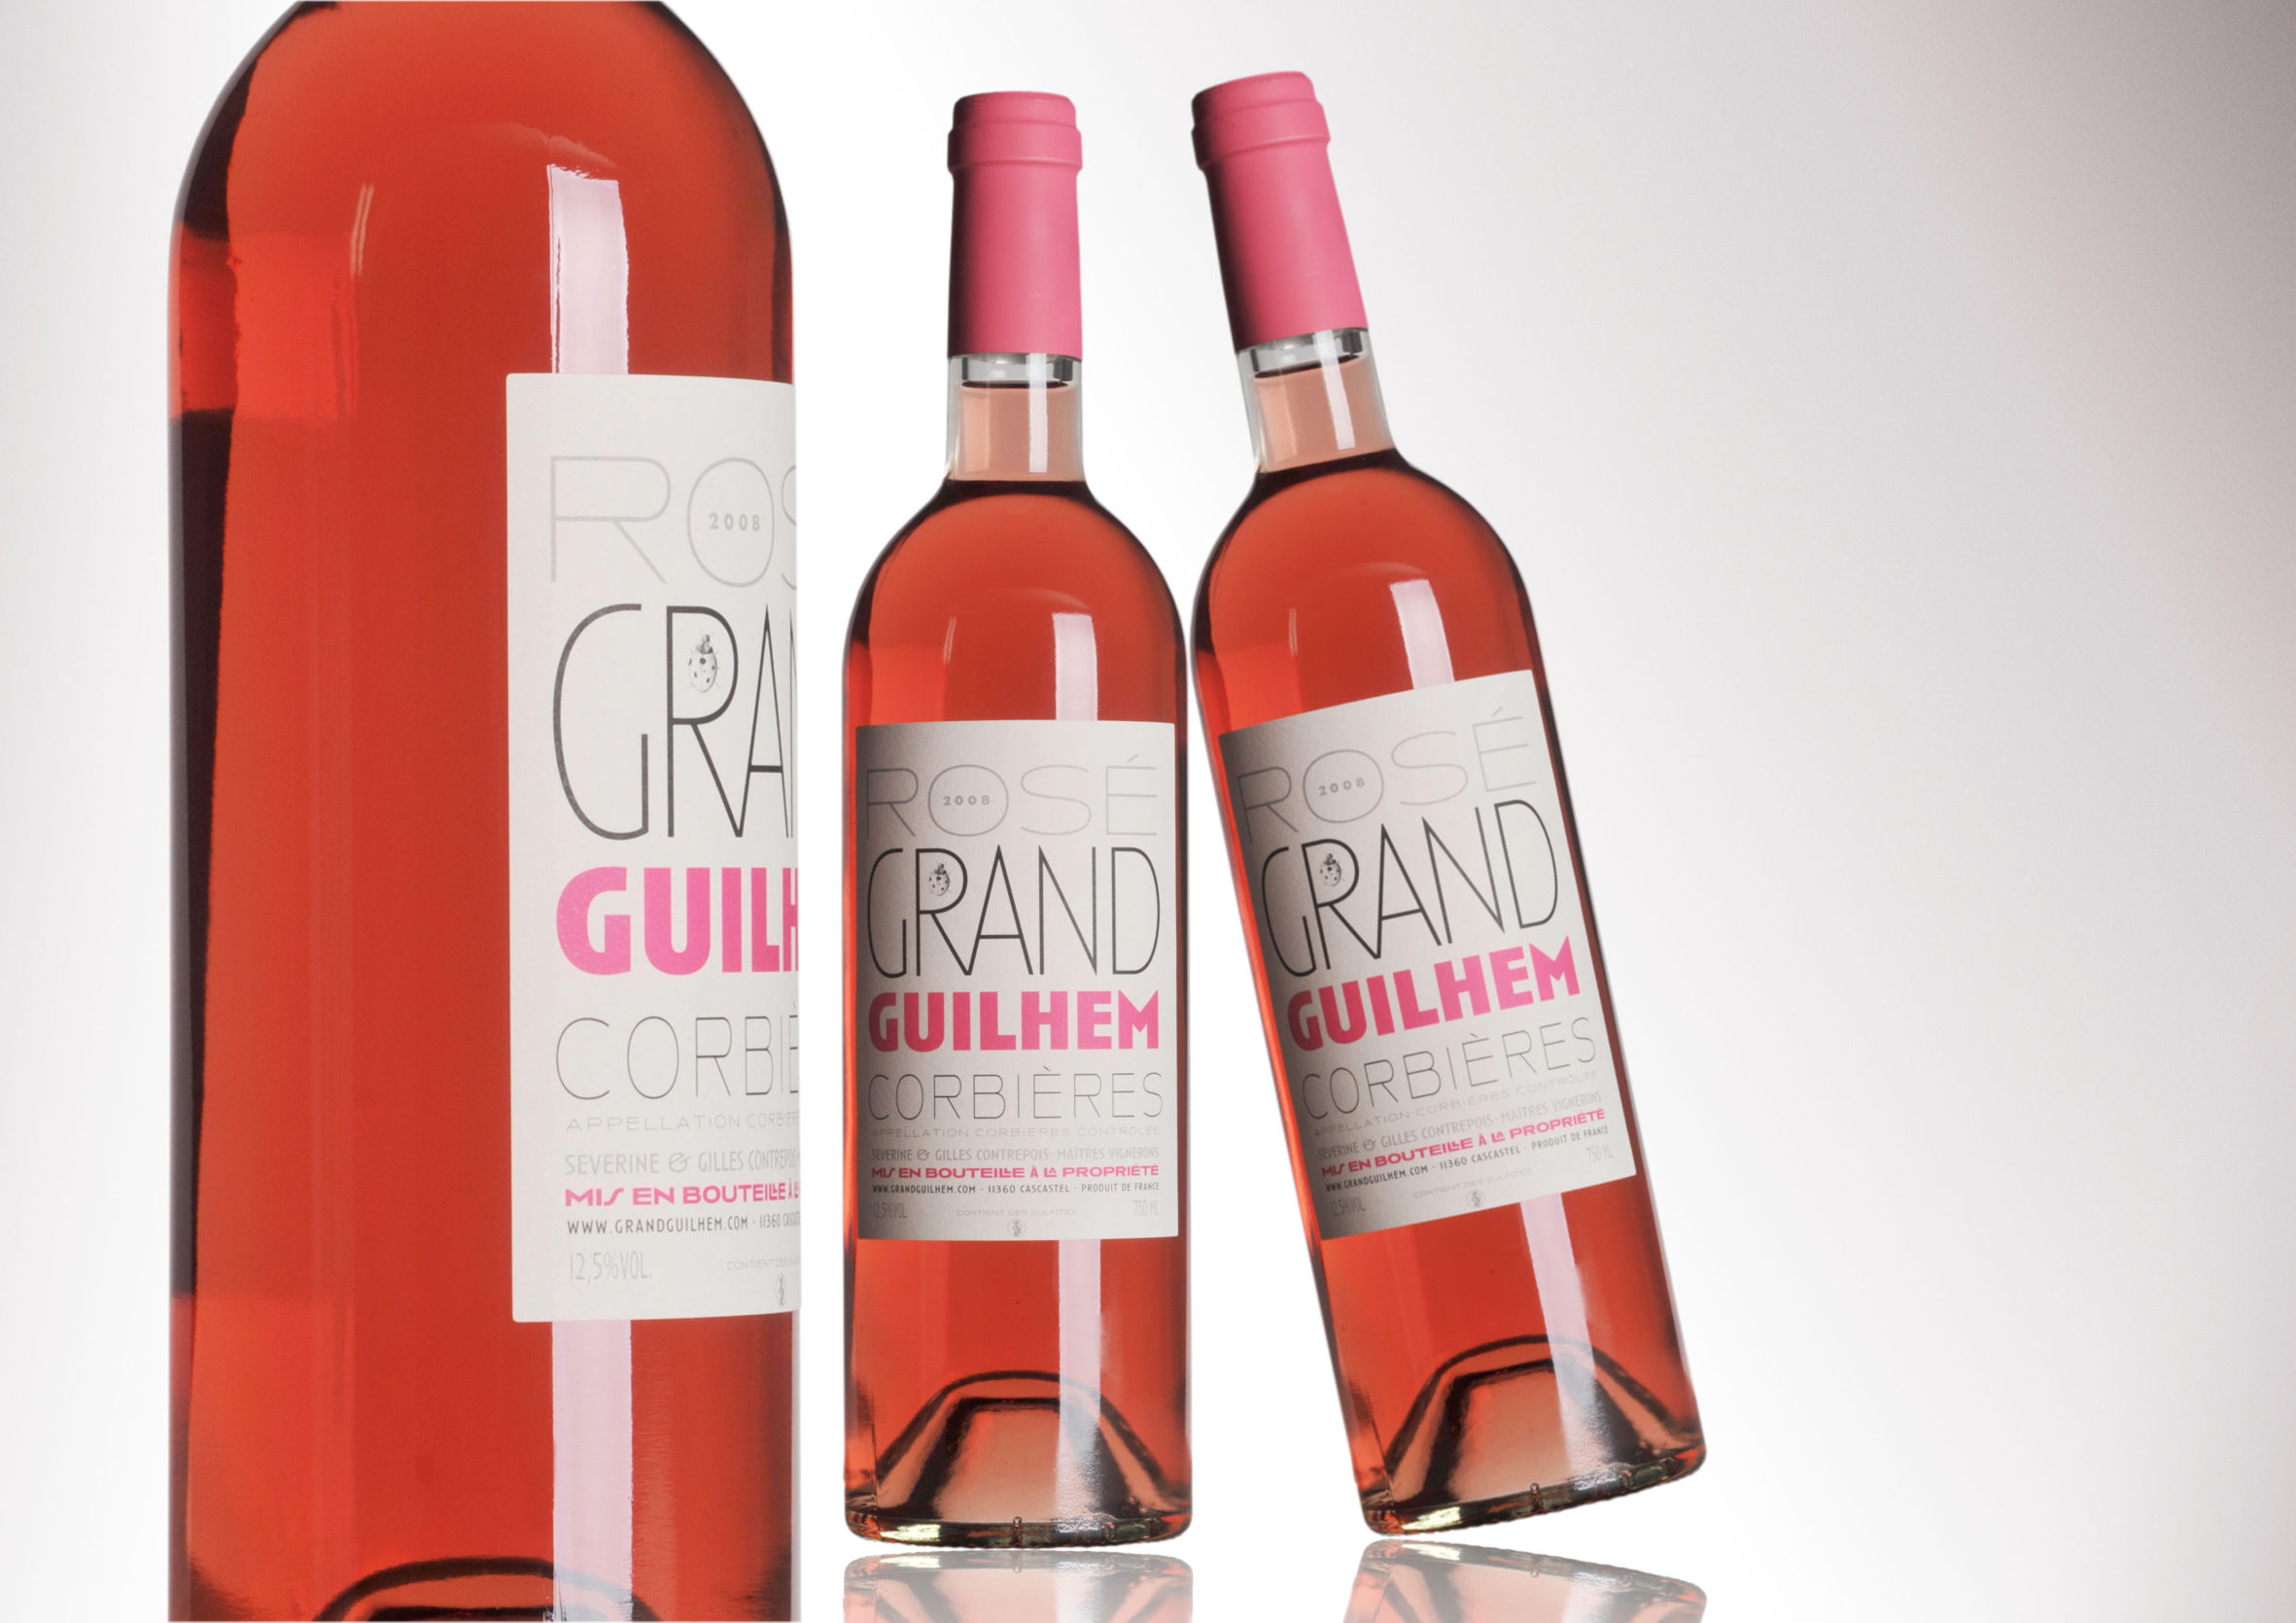 le bio guide Domaine grand guilhem